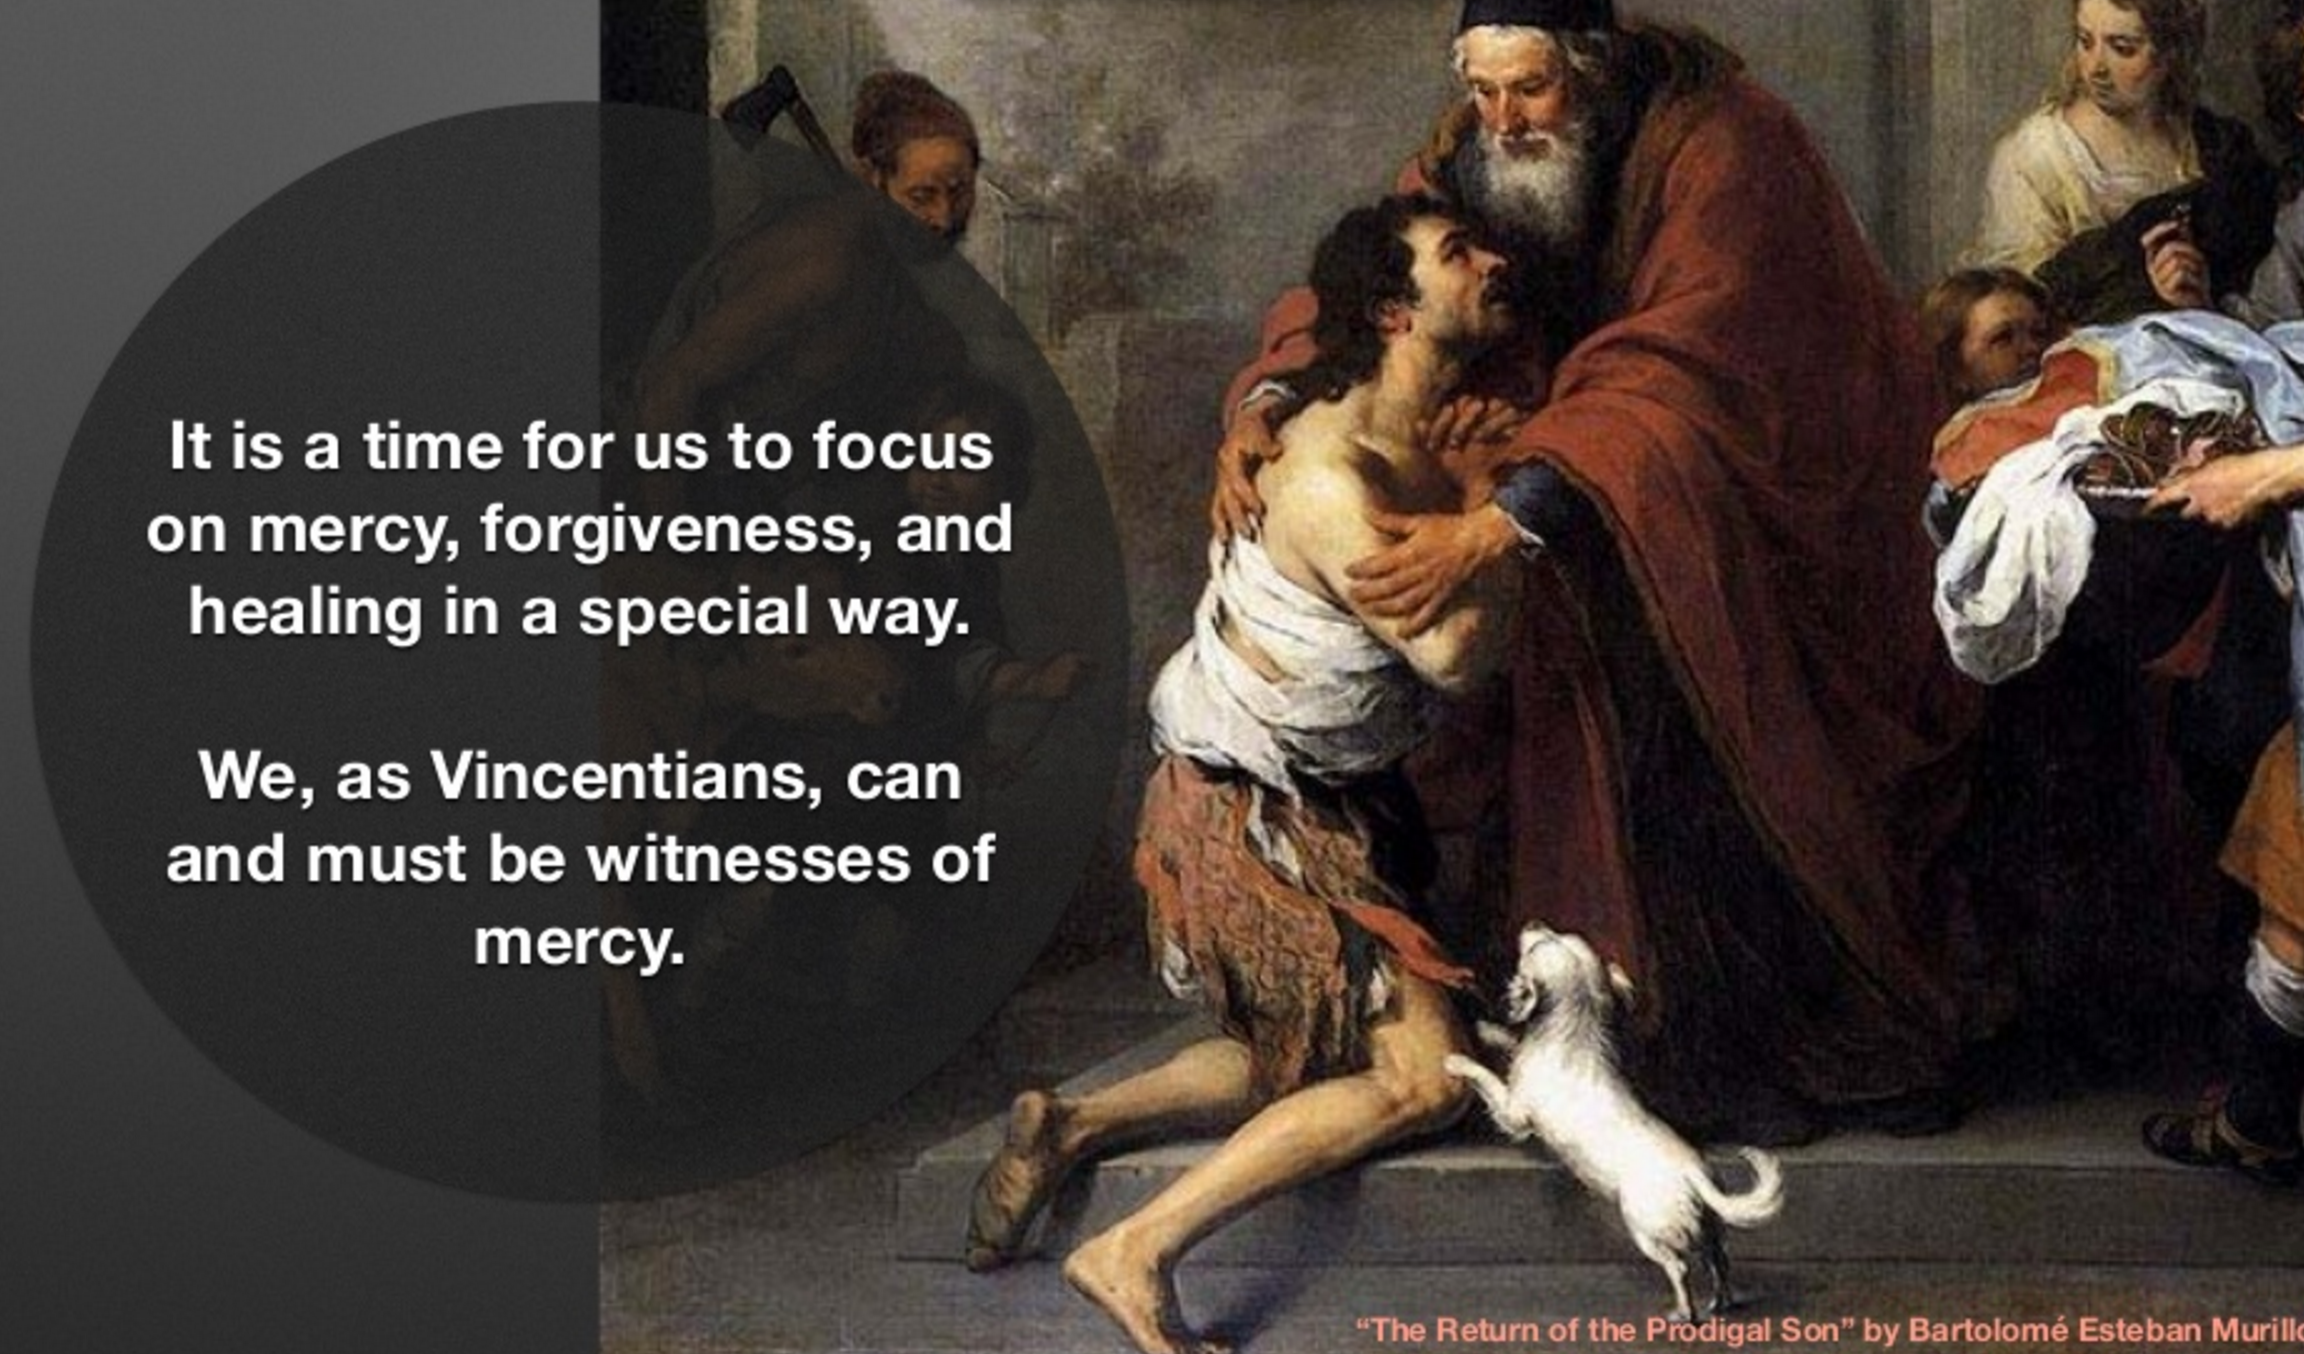 Year of Mercy – special concern of Vincentians